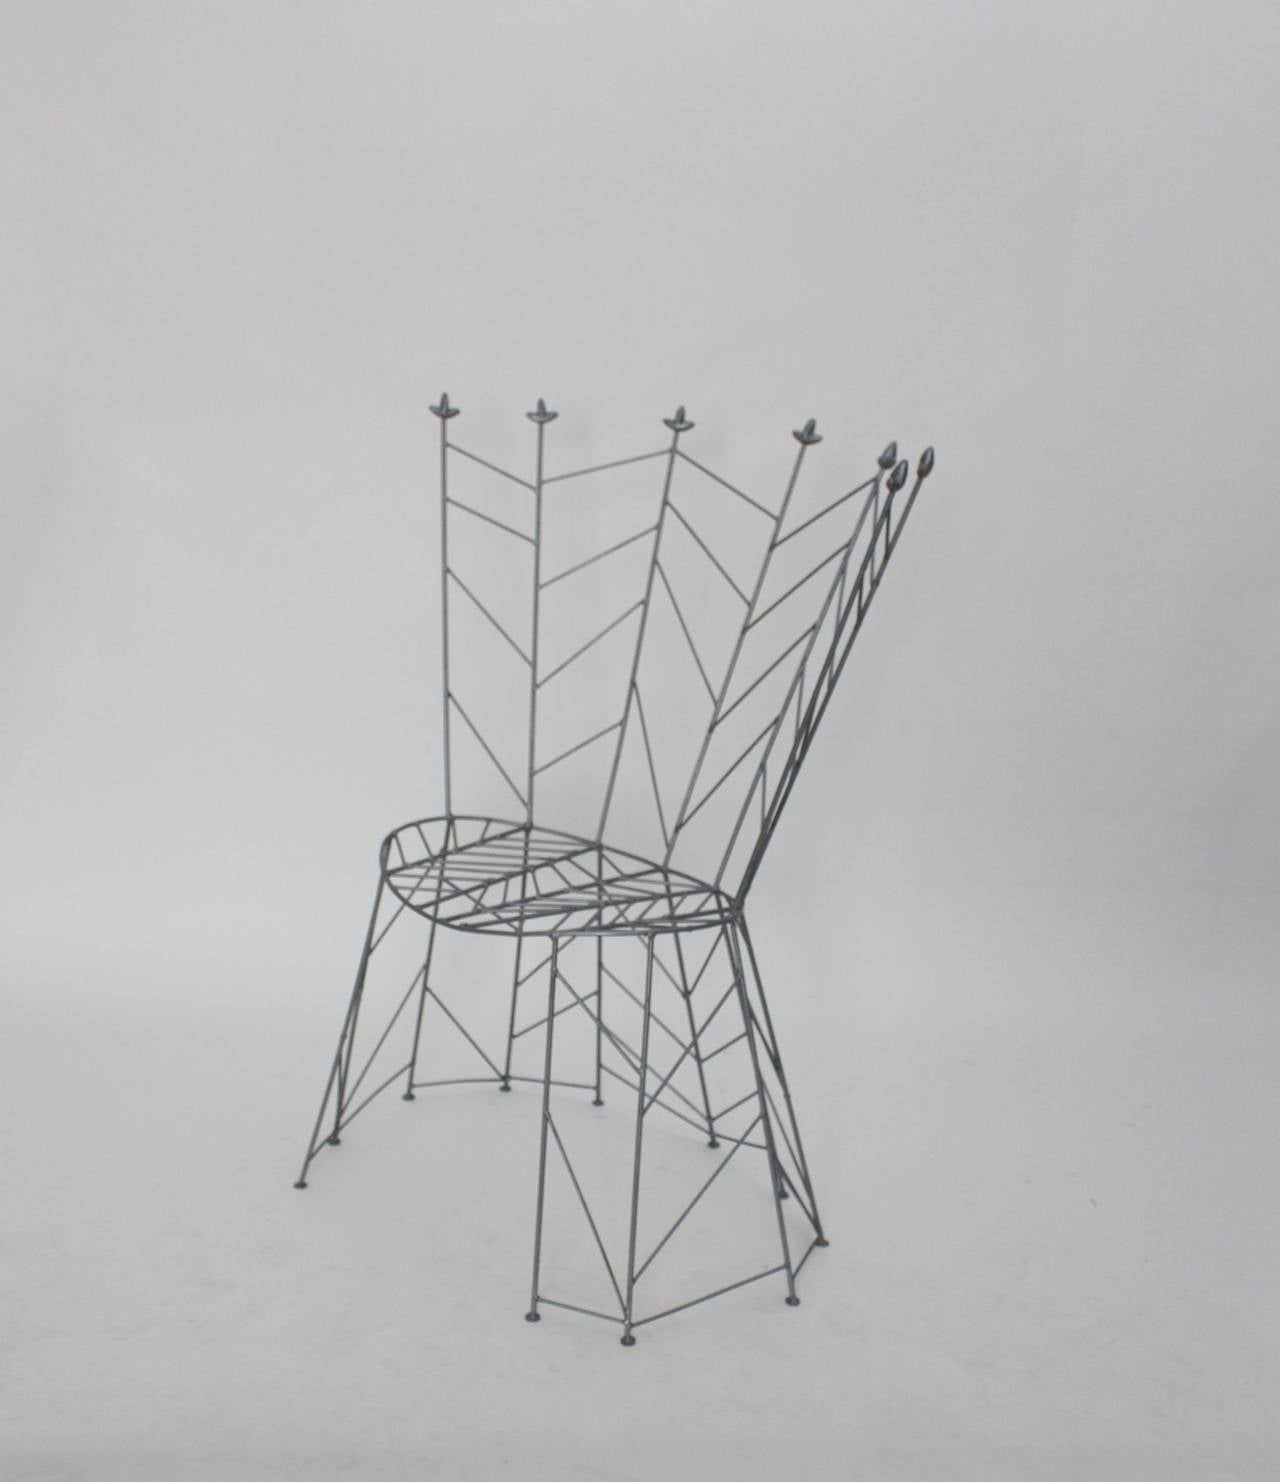 Iron Modernist Metal Vintage Chairs Pupeny by Bohuslav Horak 1988 Czech Republic For Sale